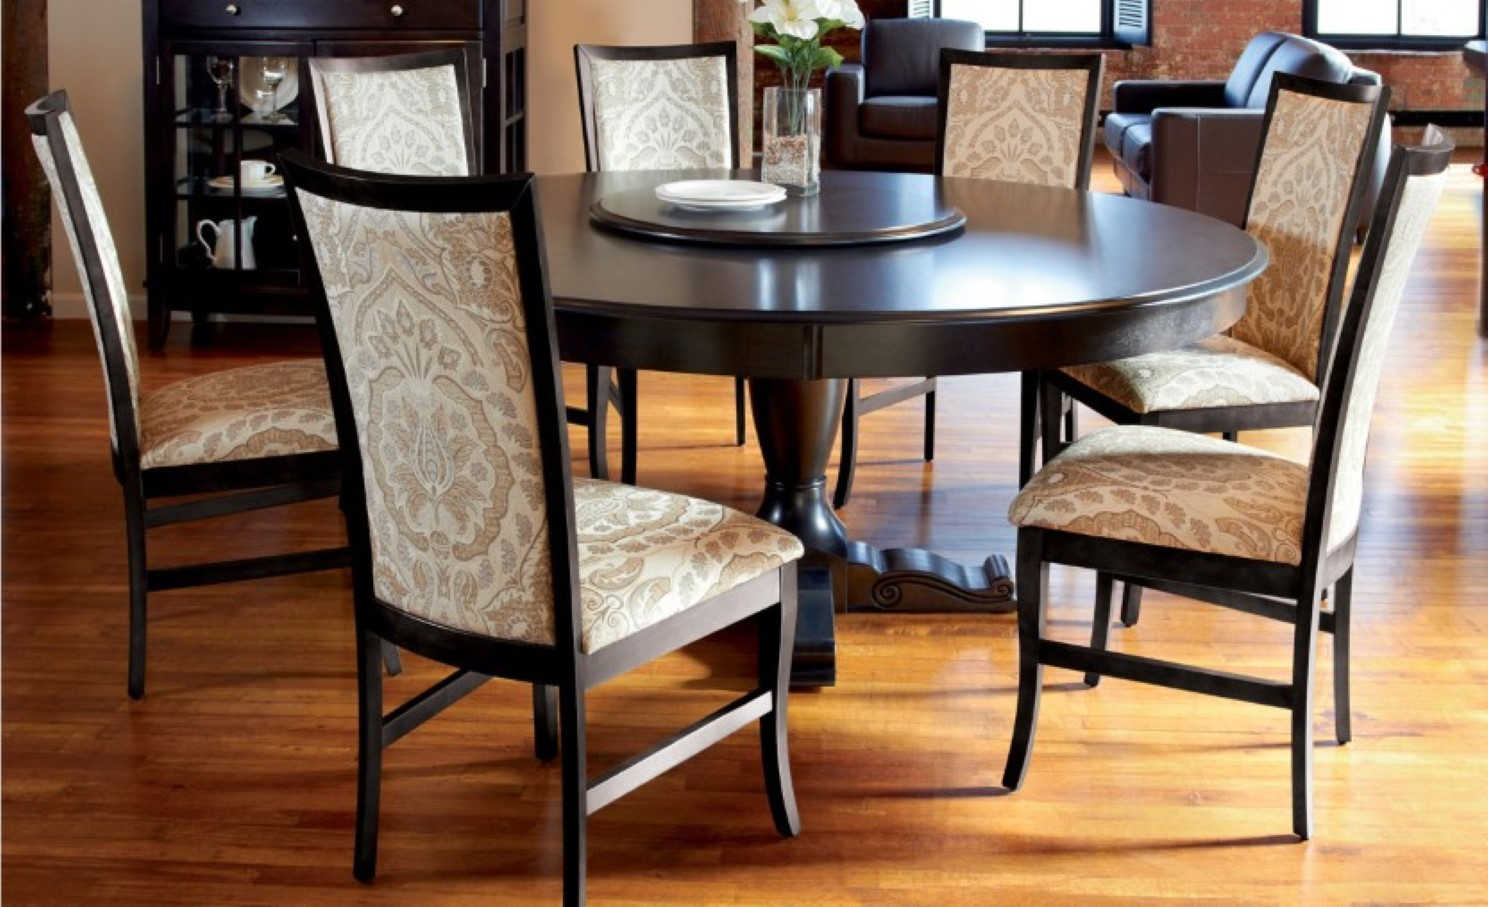 Pleasant Round Dining Table Set With Leaf Homesfeed Short Links Chair Design For Home Short Linksinfo